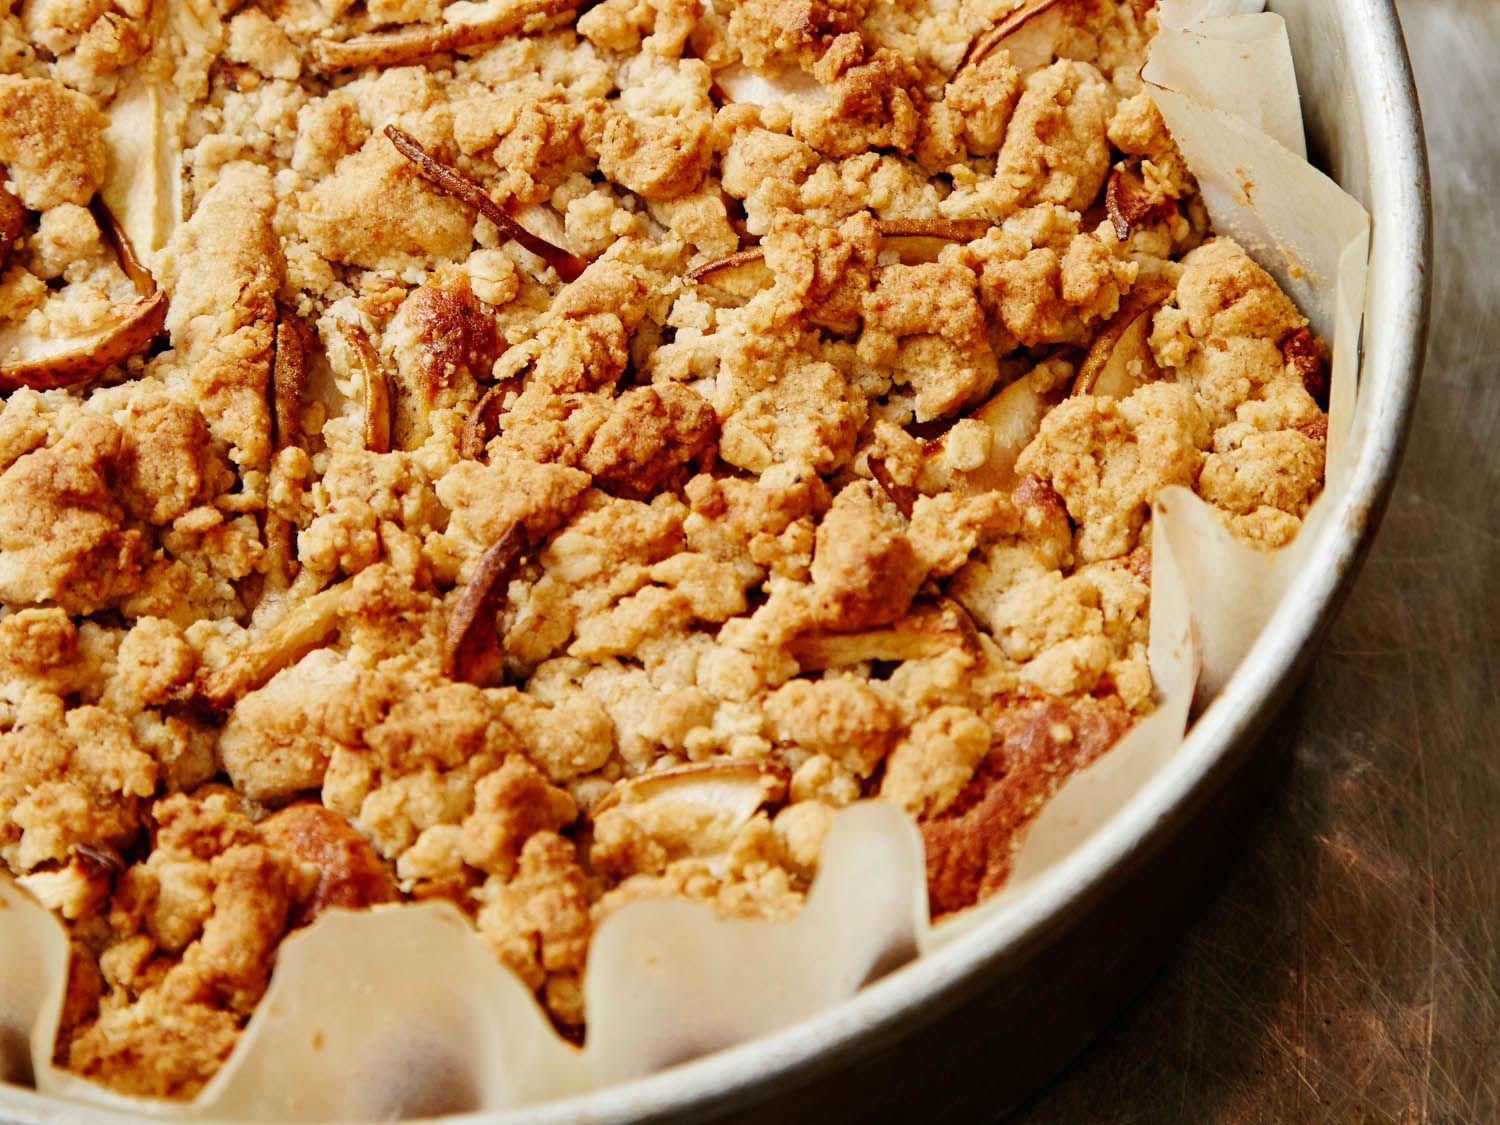 Dense, nutty, and sweet: this pear whole-wheat crumb cake works great for fall